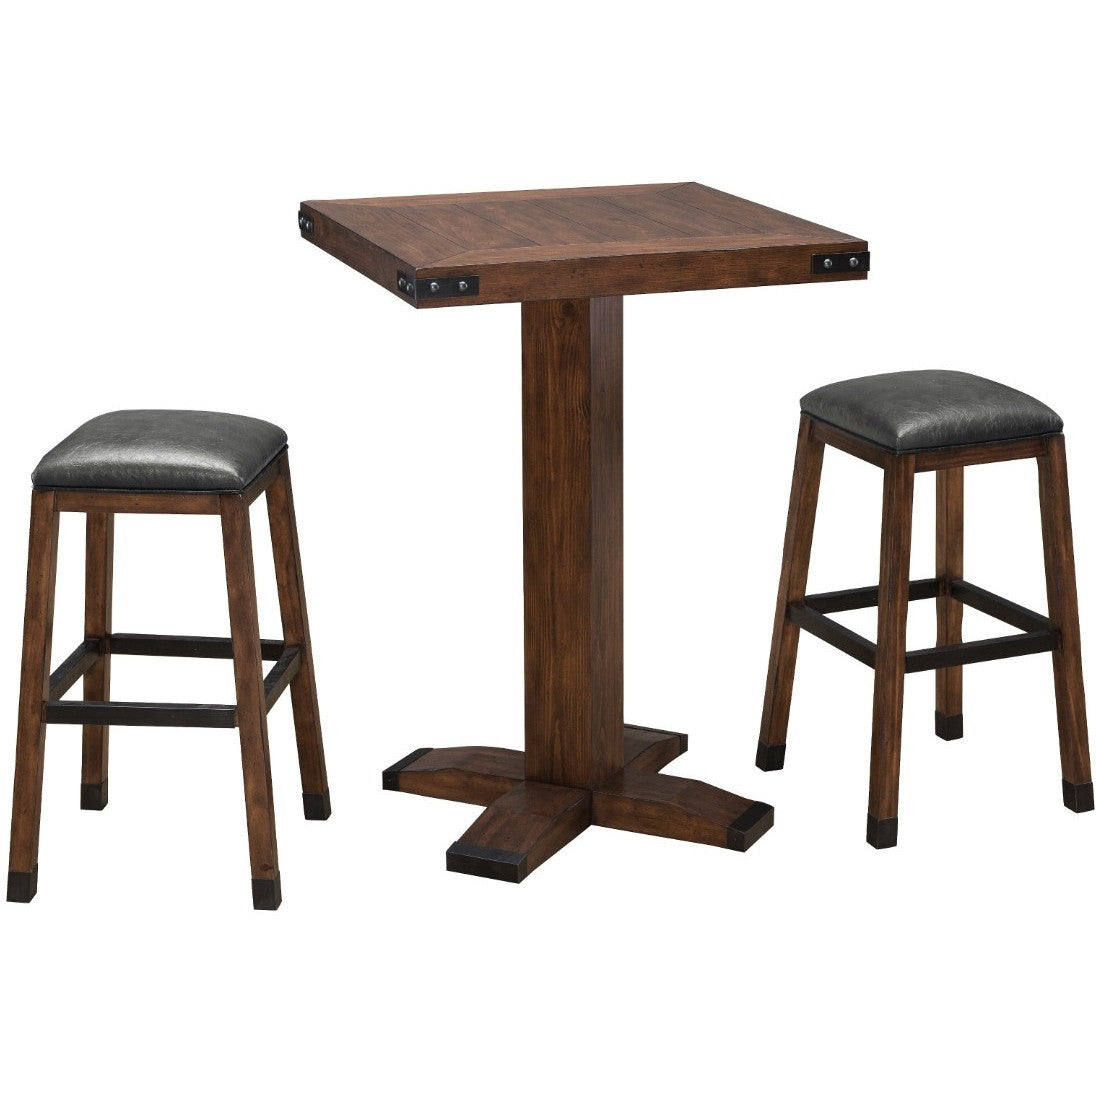 Signature Rustic Backless Bar Stool, Kitchen and Bar Stool, Legacy - Danny Vegh's